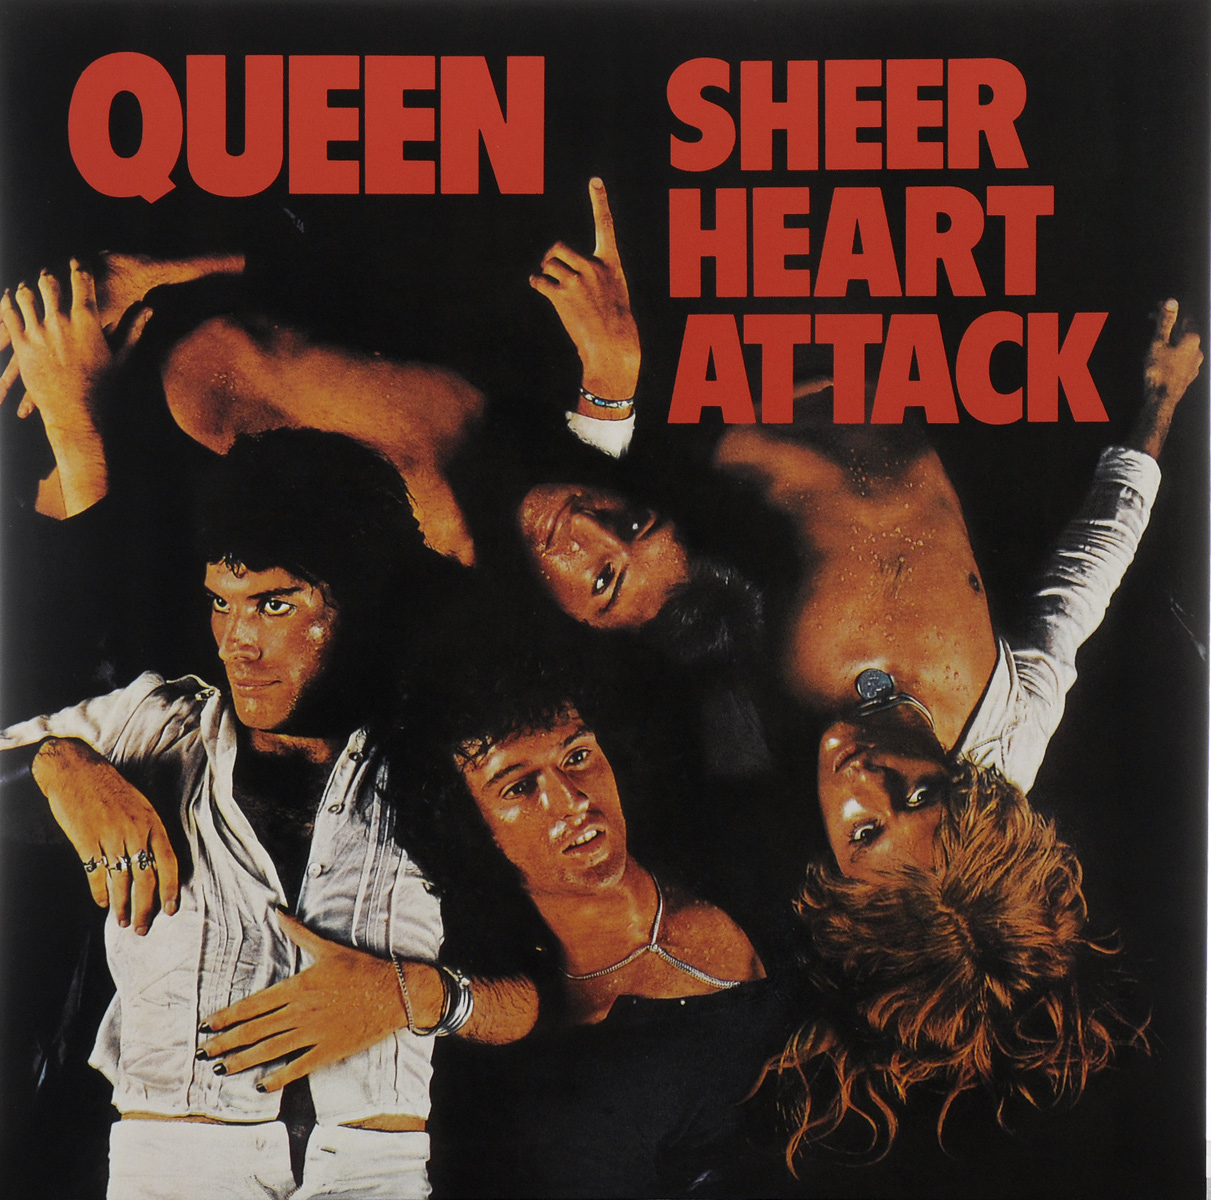 Queen Queen. Sheer Heart Attack (LP) 1 pair 1000g d cup realistic fake silicone breast forms artificial boobs tits for shemale vagina transgender drag queen shemale